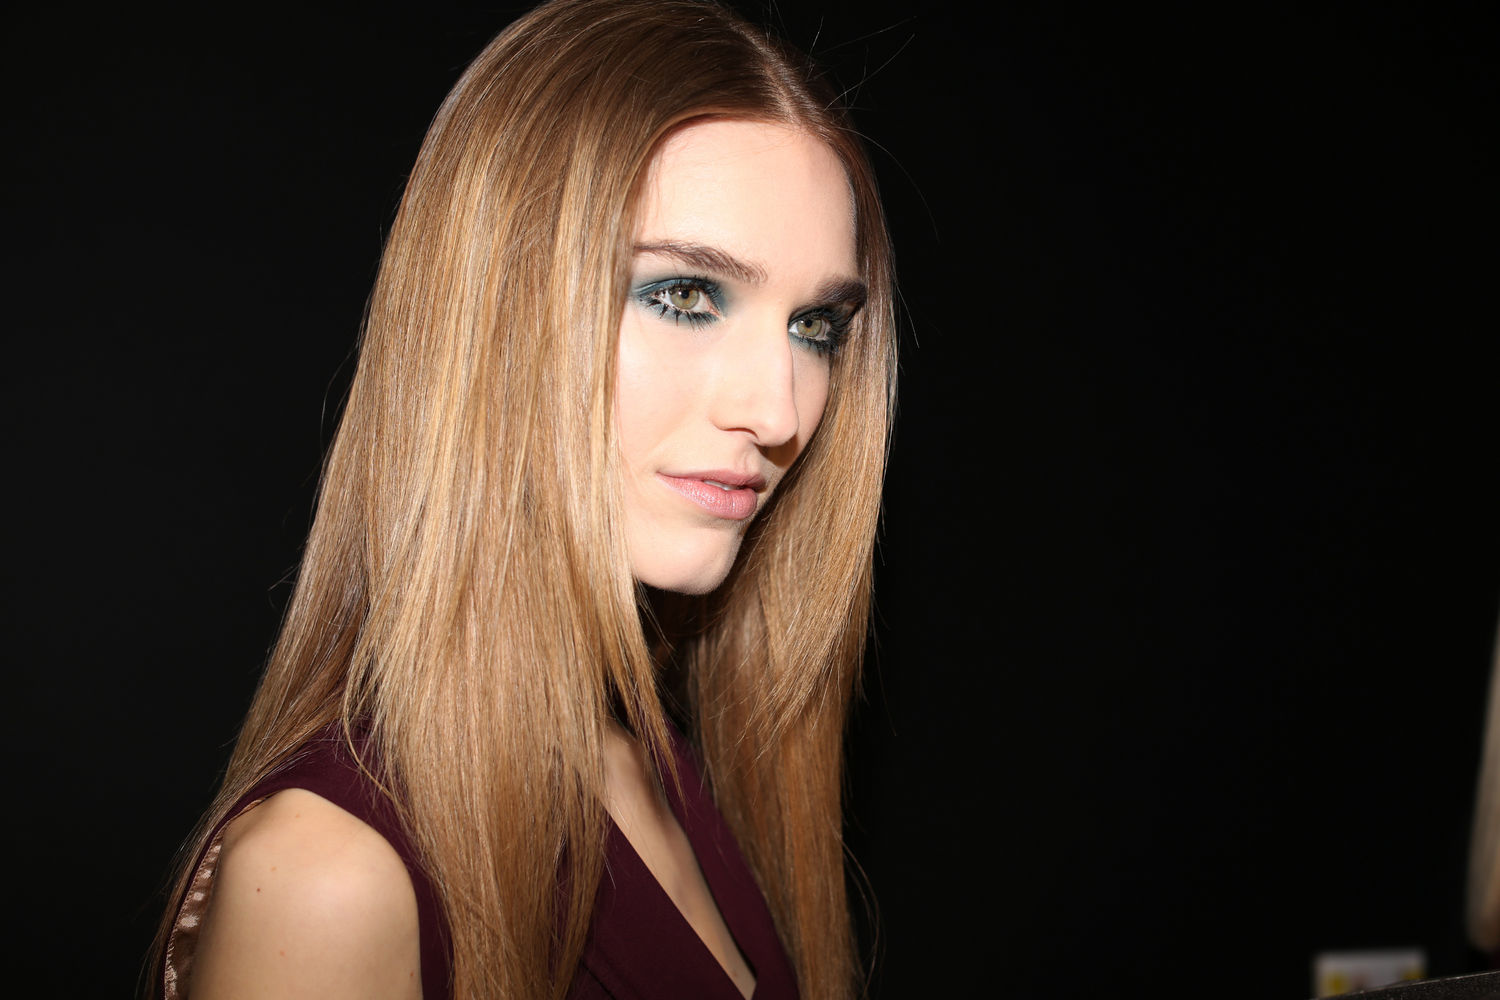 30-hair-colors-that-work-from-summer-to-fall-blond-brunette-red-with-regard-to-fall-hair-colors-fall-hair-colors